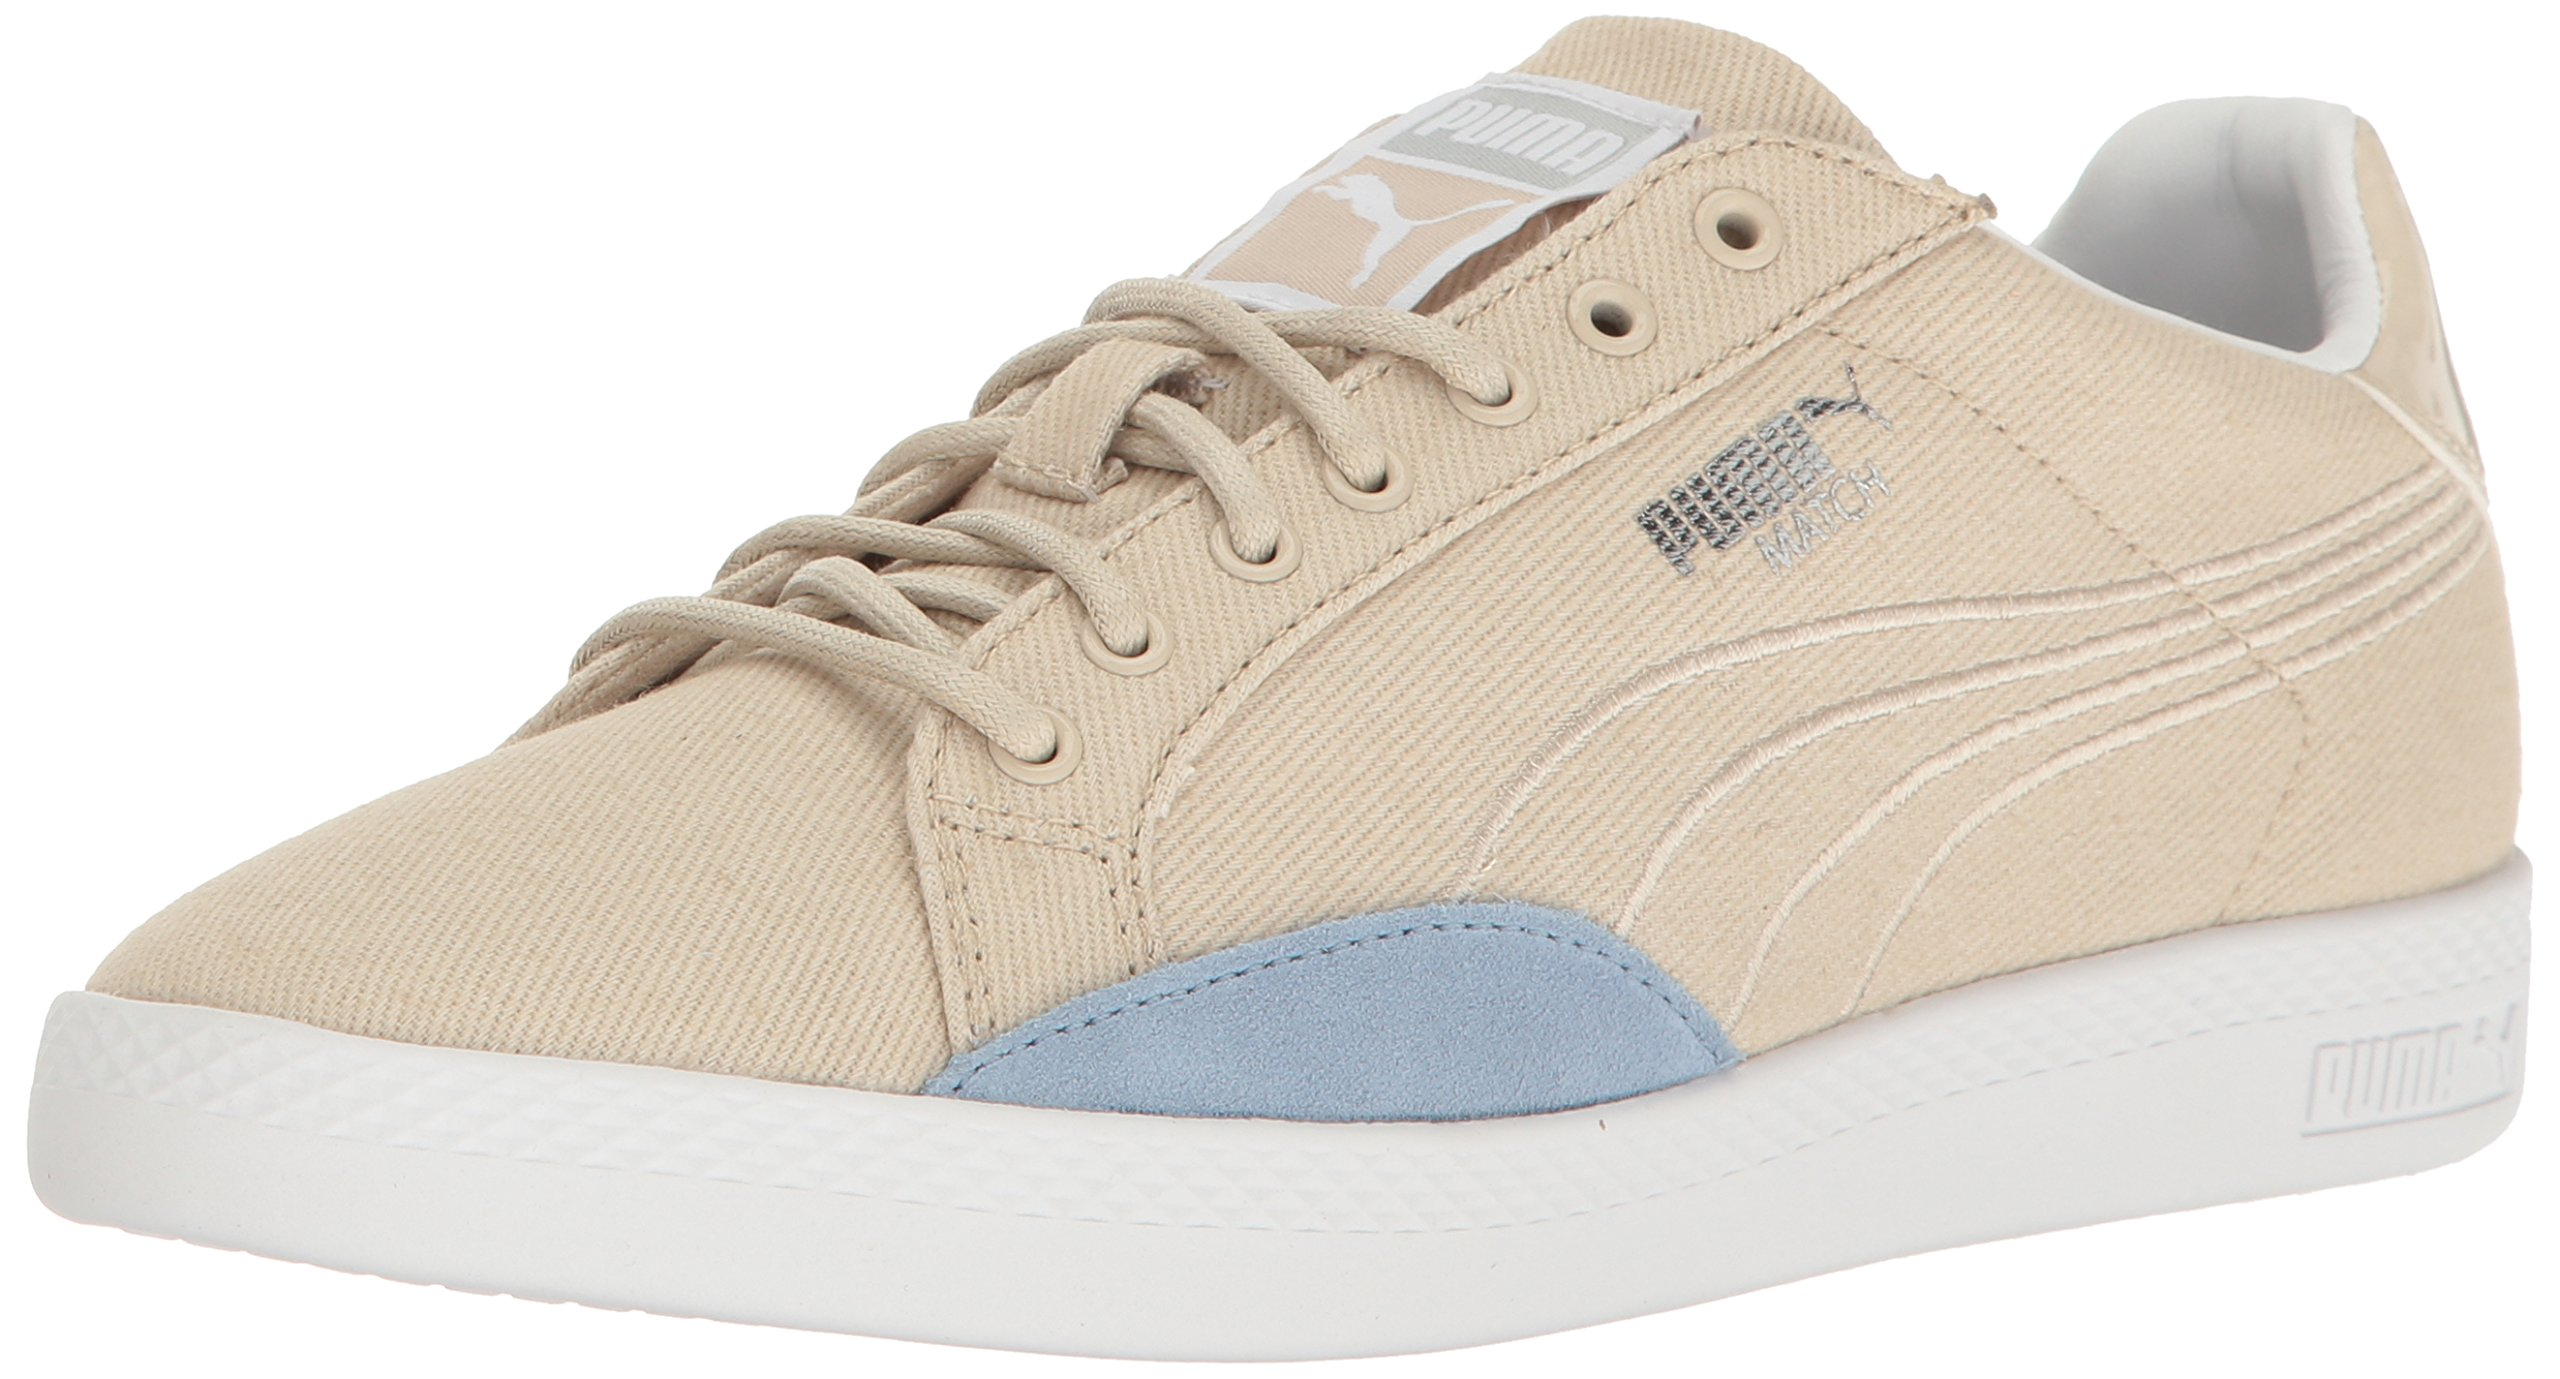 PUMA Women's Match Denim WN's Field Hockey Shoe, Oatmeal, 6 M US by PUMA